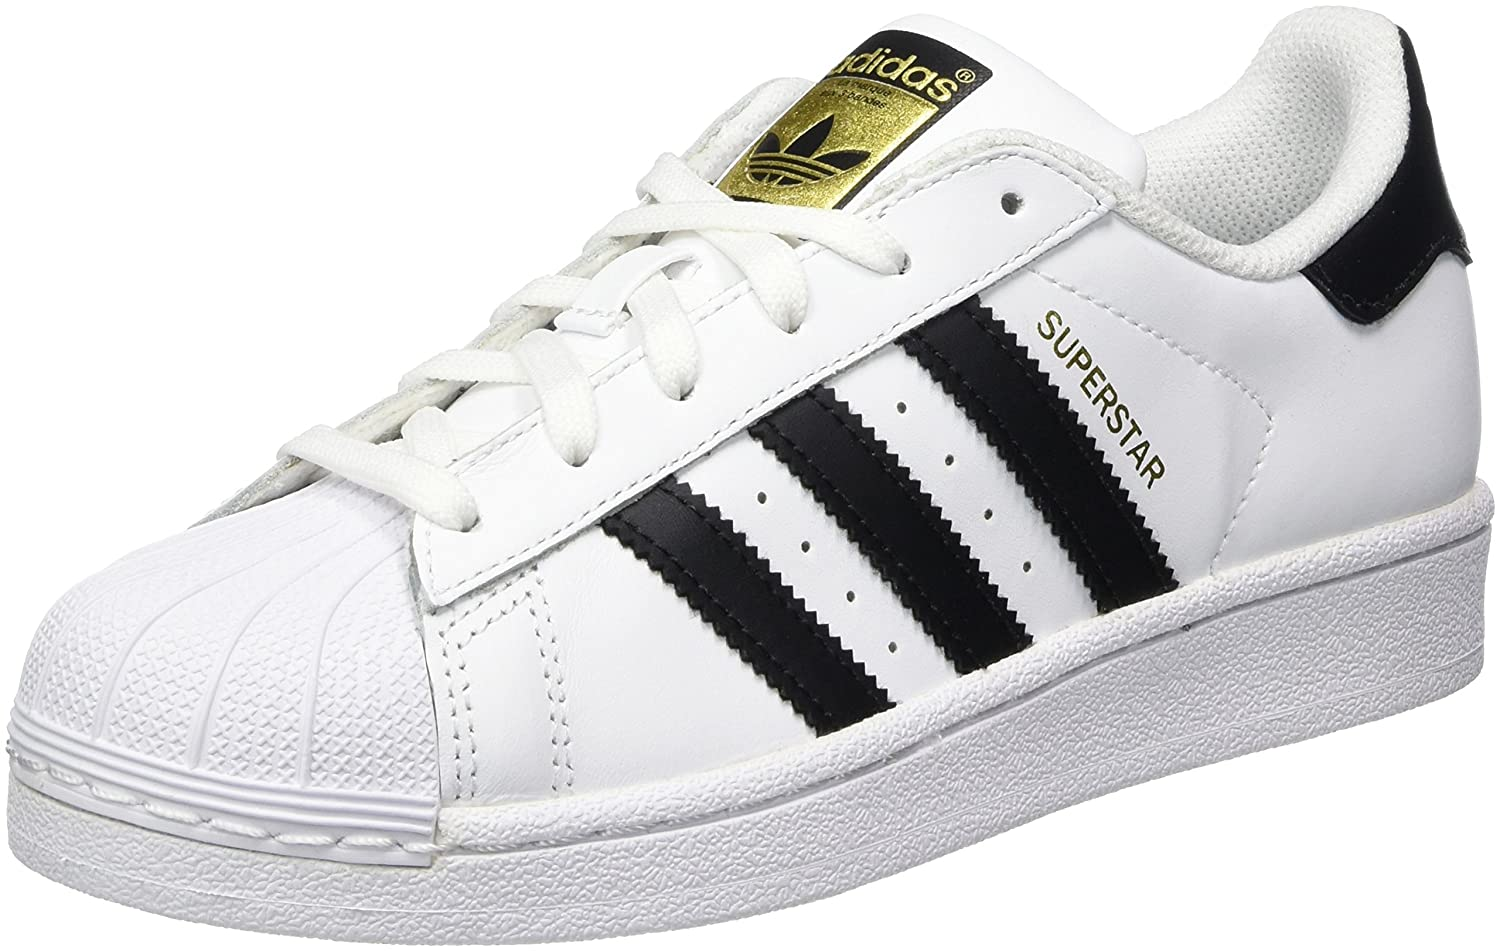 reputable site ef514 e88f7 Amazon.com  adidas Originals Superstar J WhiteBlack Leather Youth  Trainers Shoes  Sneakers